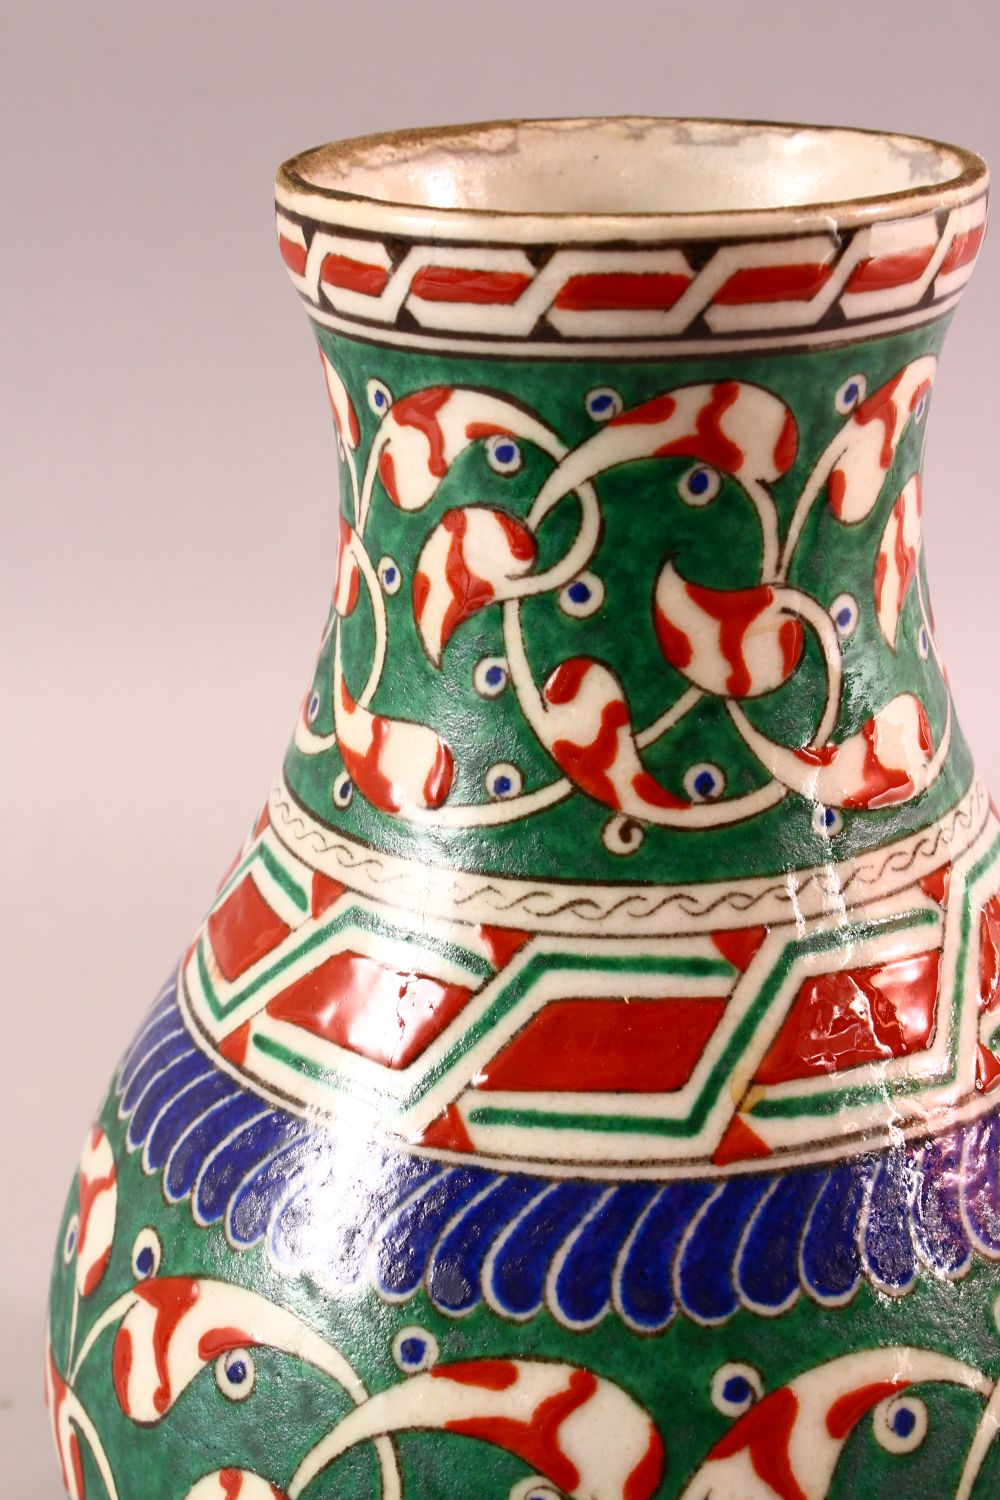 A TURKISH OTTOMAN 18TH CENTURY IZNIK VASE, with green and red motif decorations, 26cm - Image 2 of 4